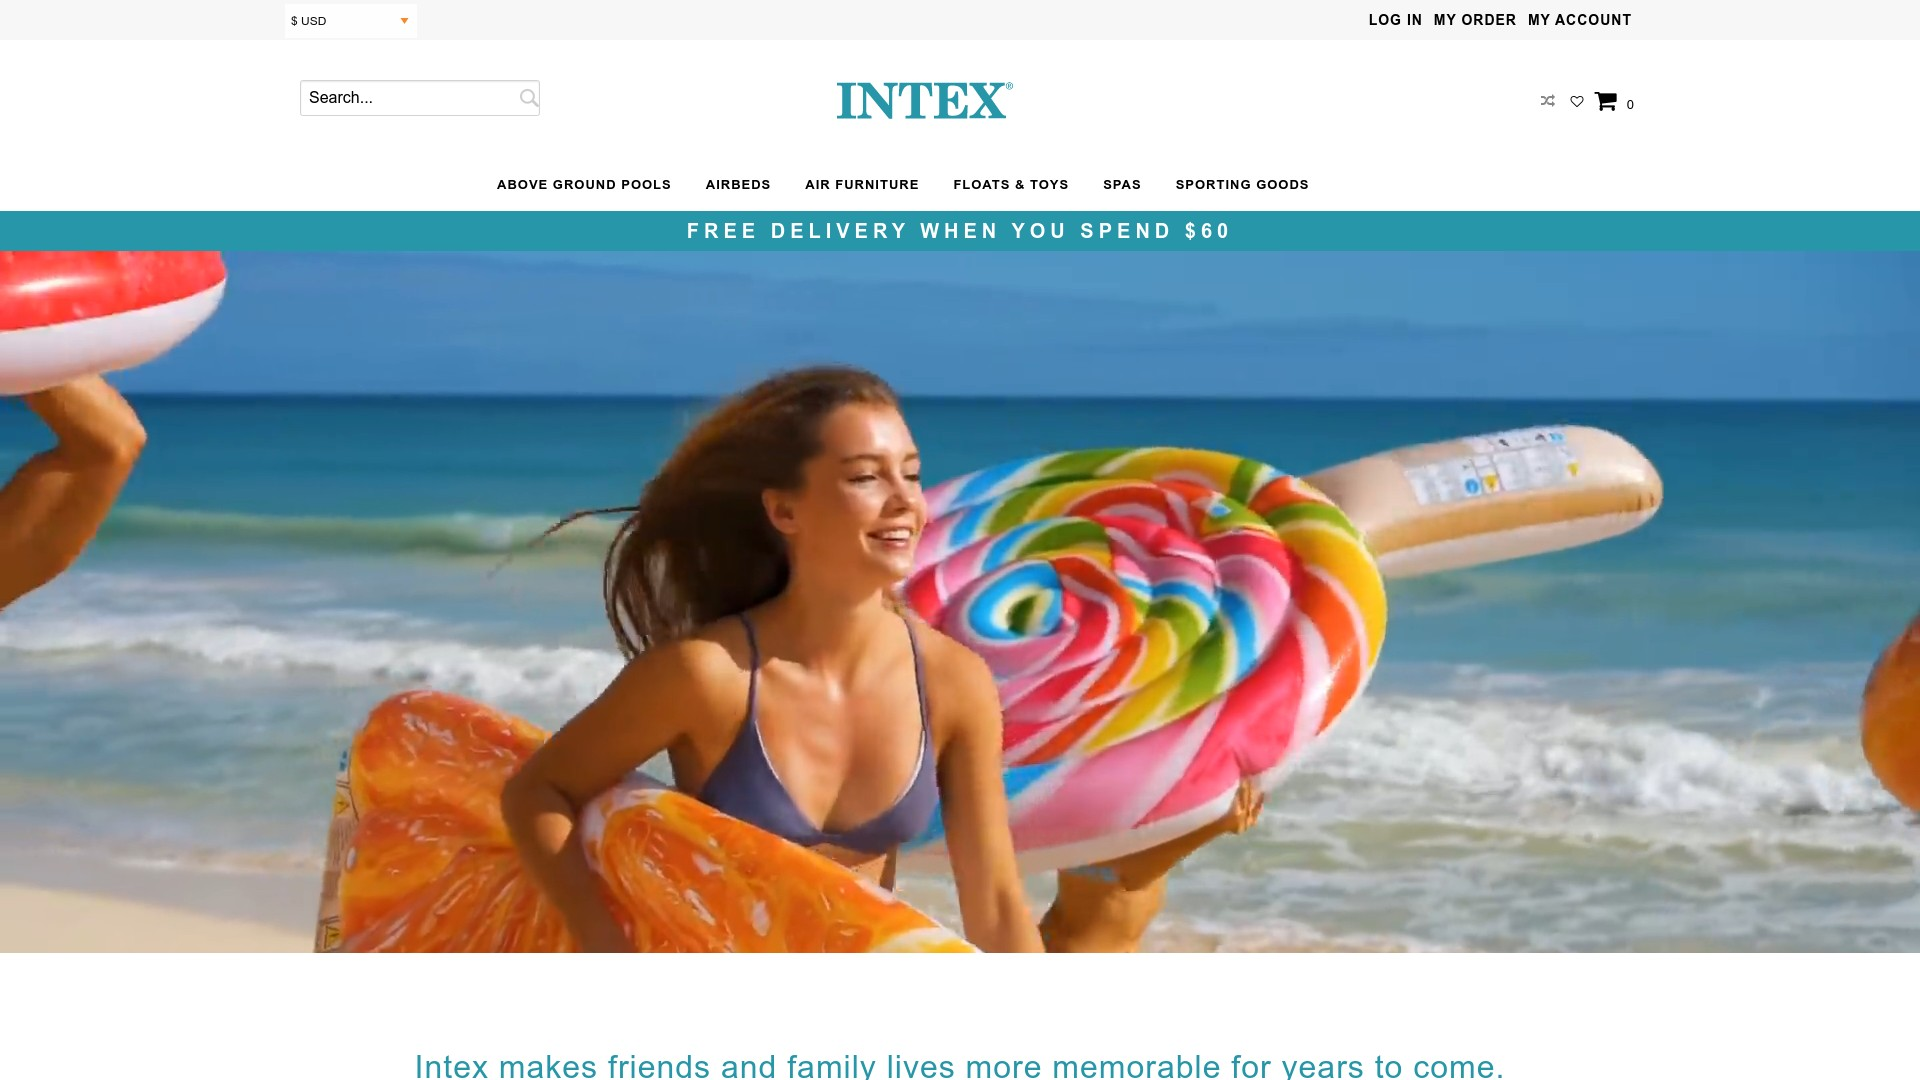 Is Intexmake.com a Scam? Review of the Online Store